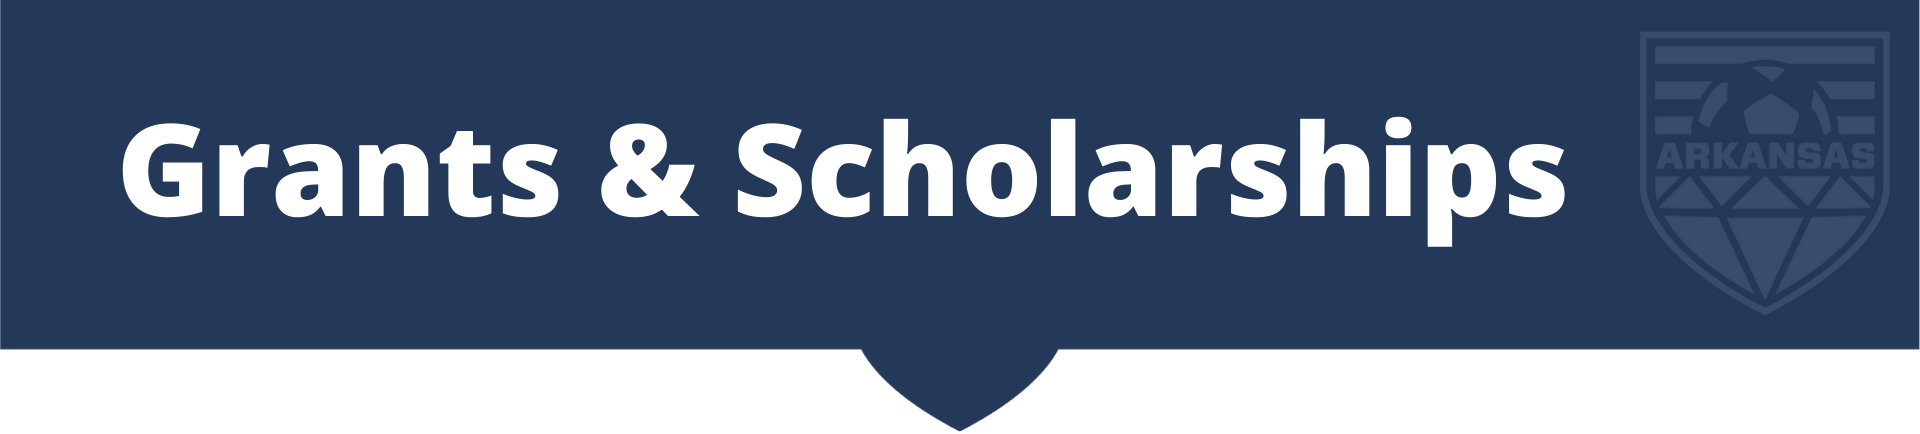 Grants__scholarships